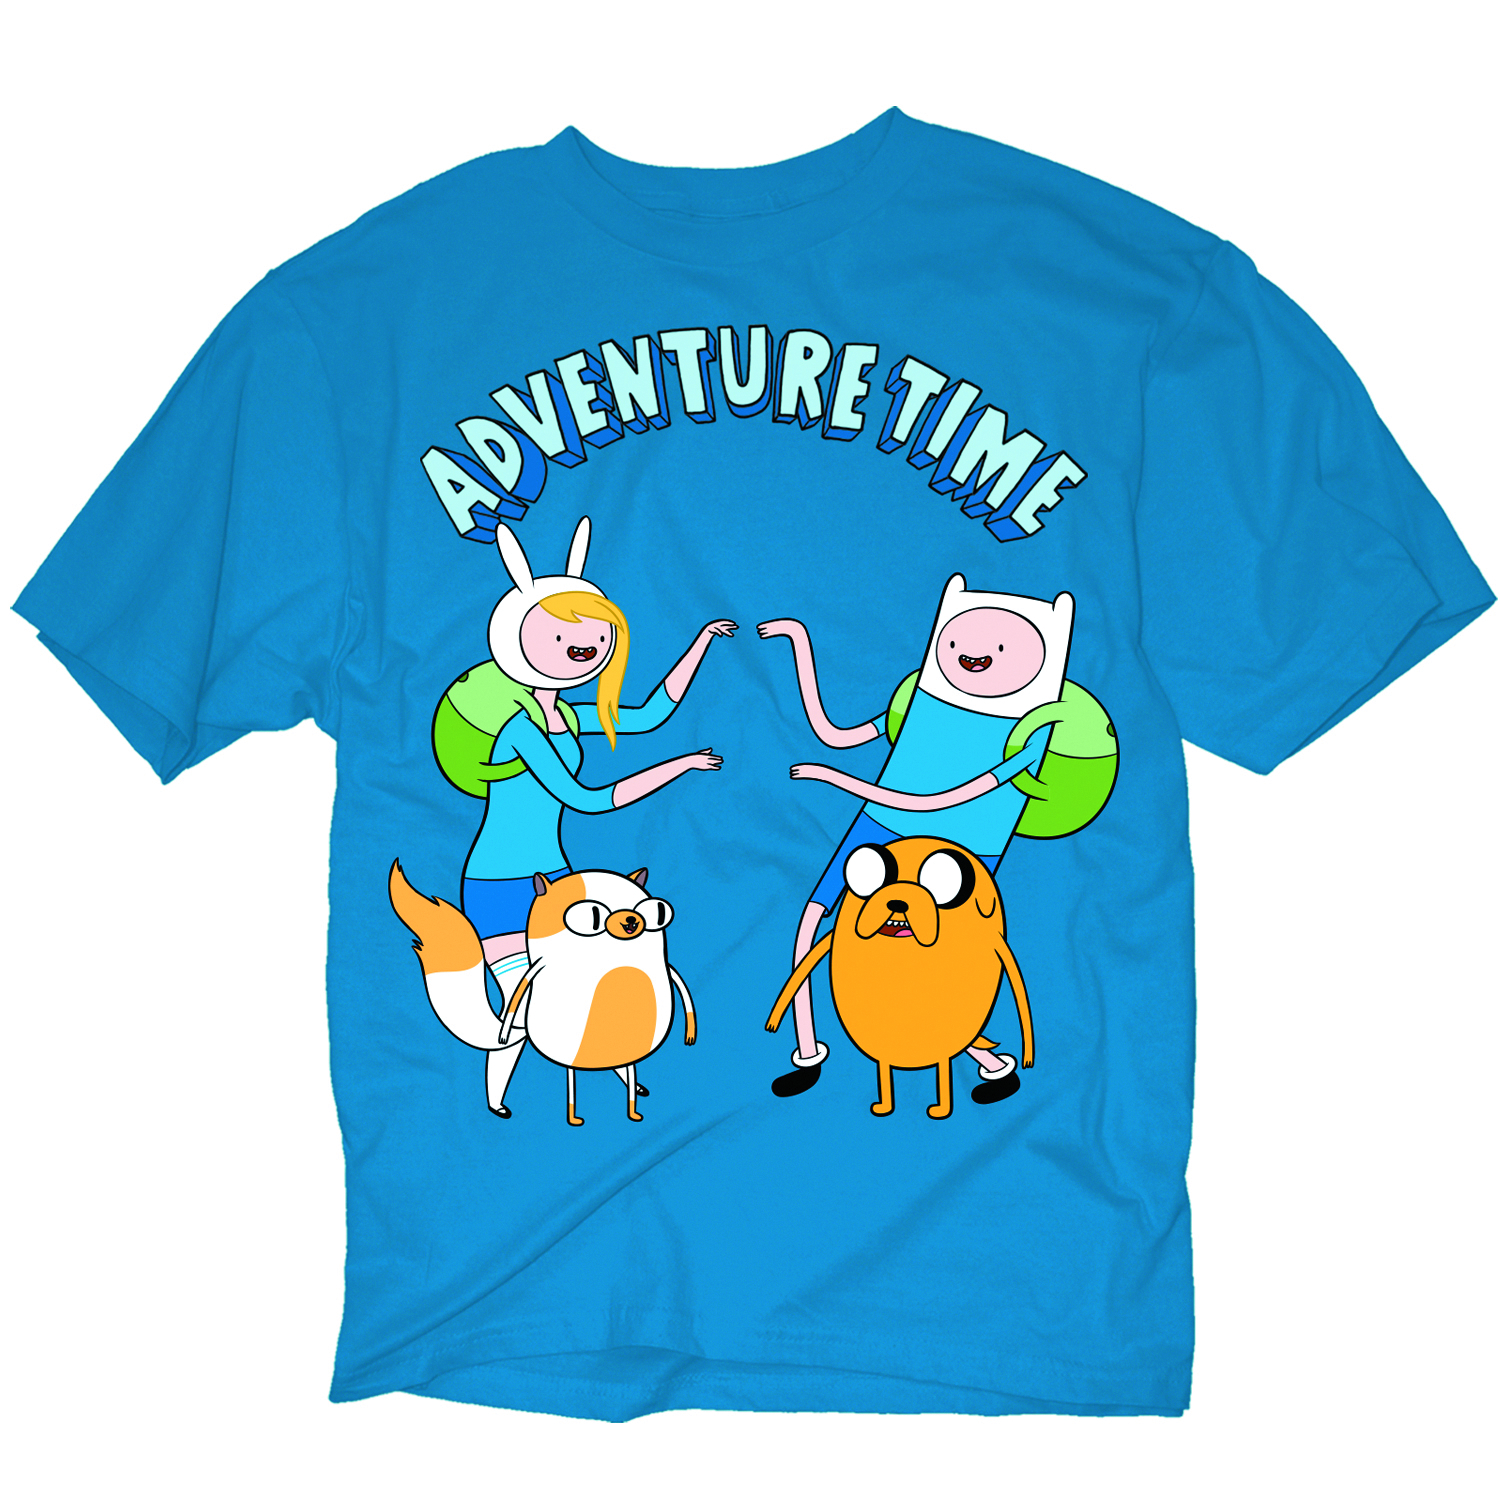 ADVENTURE TWINS PX BLUE T/S XL